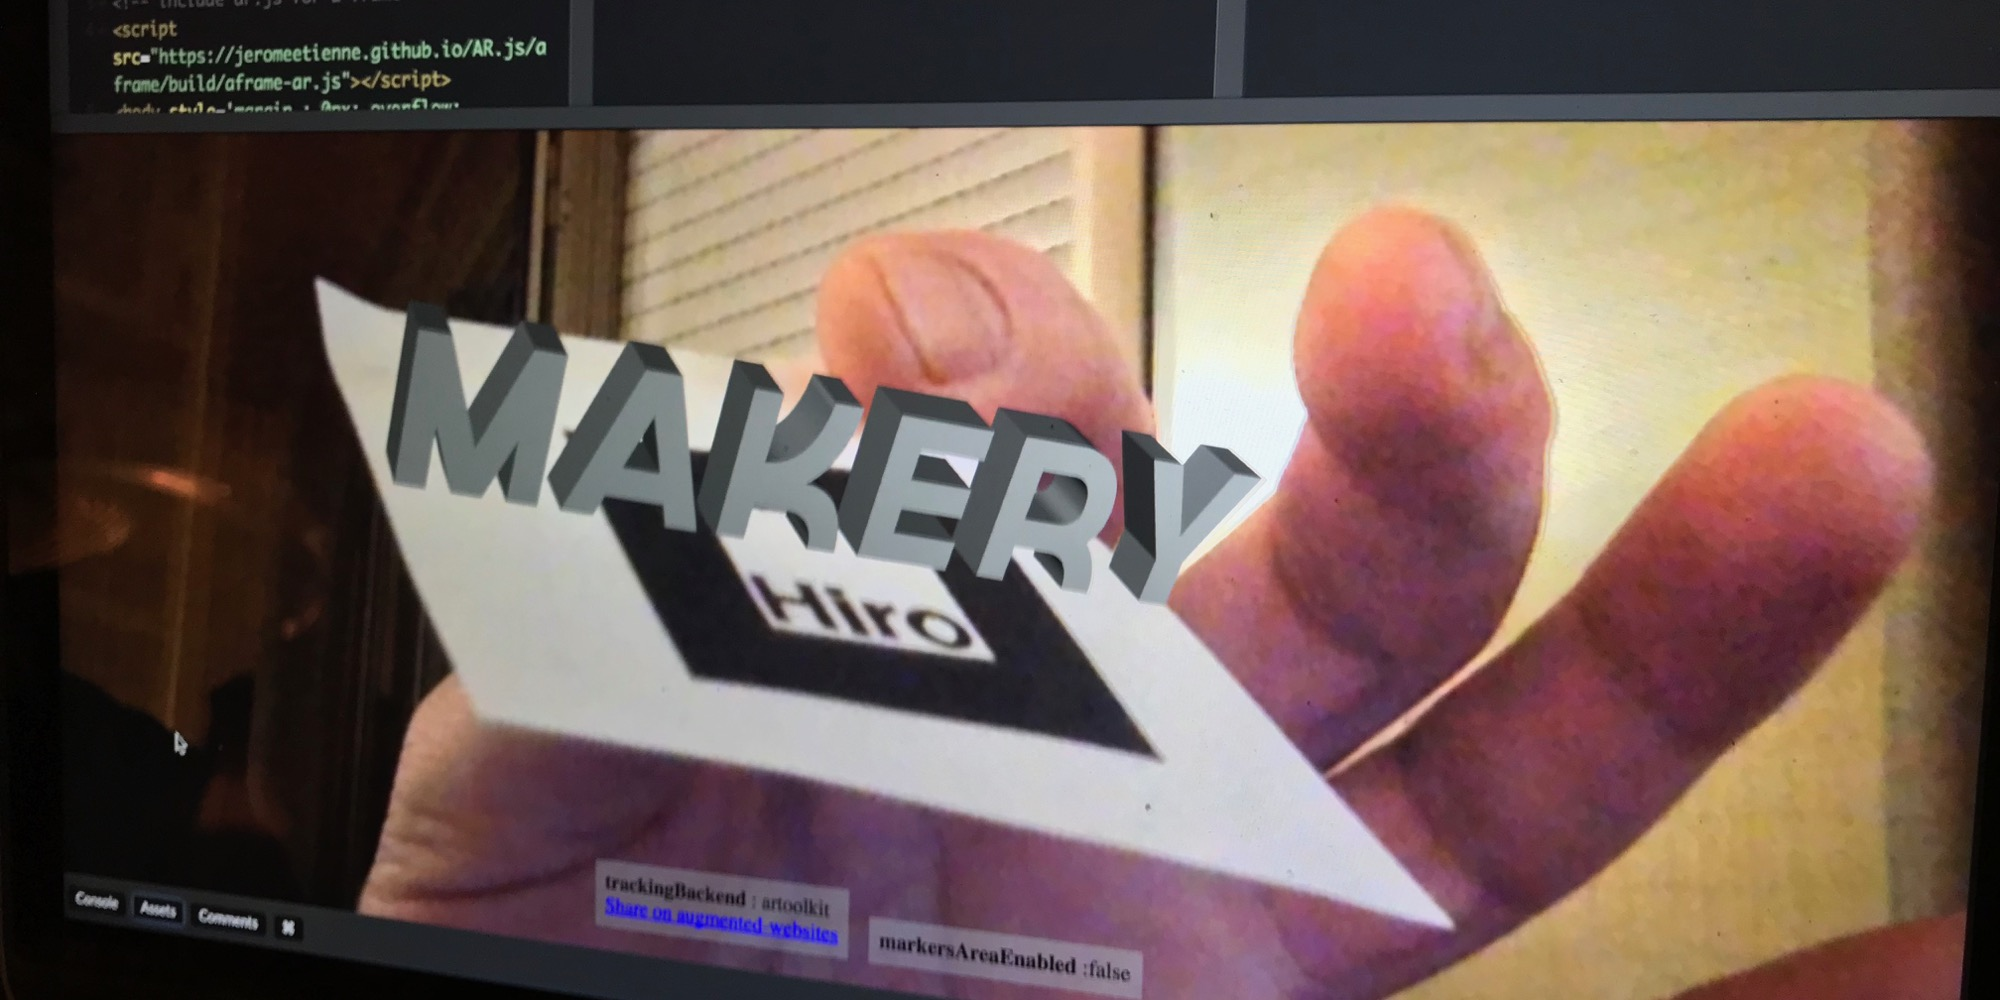 Embed augmented reality into your Web page with 10 lines of